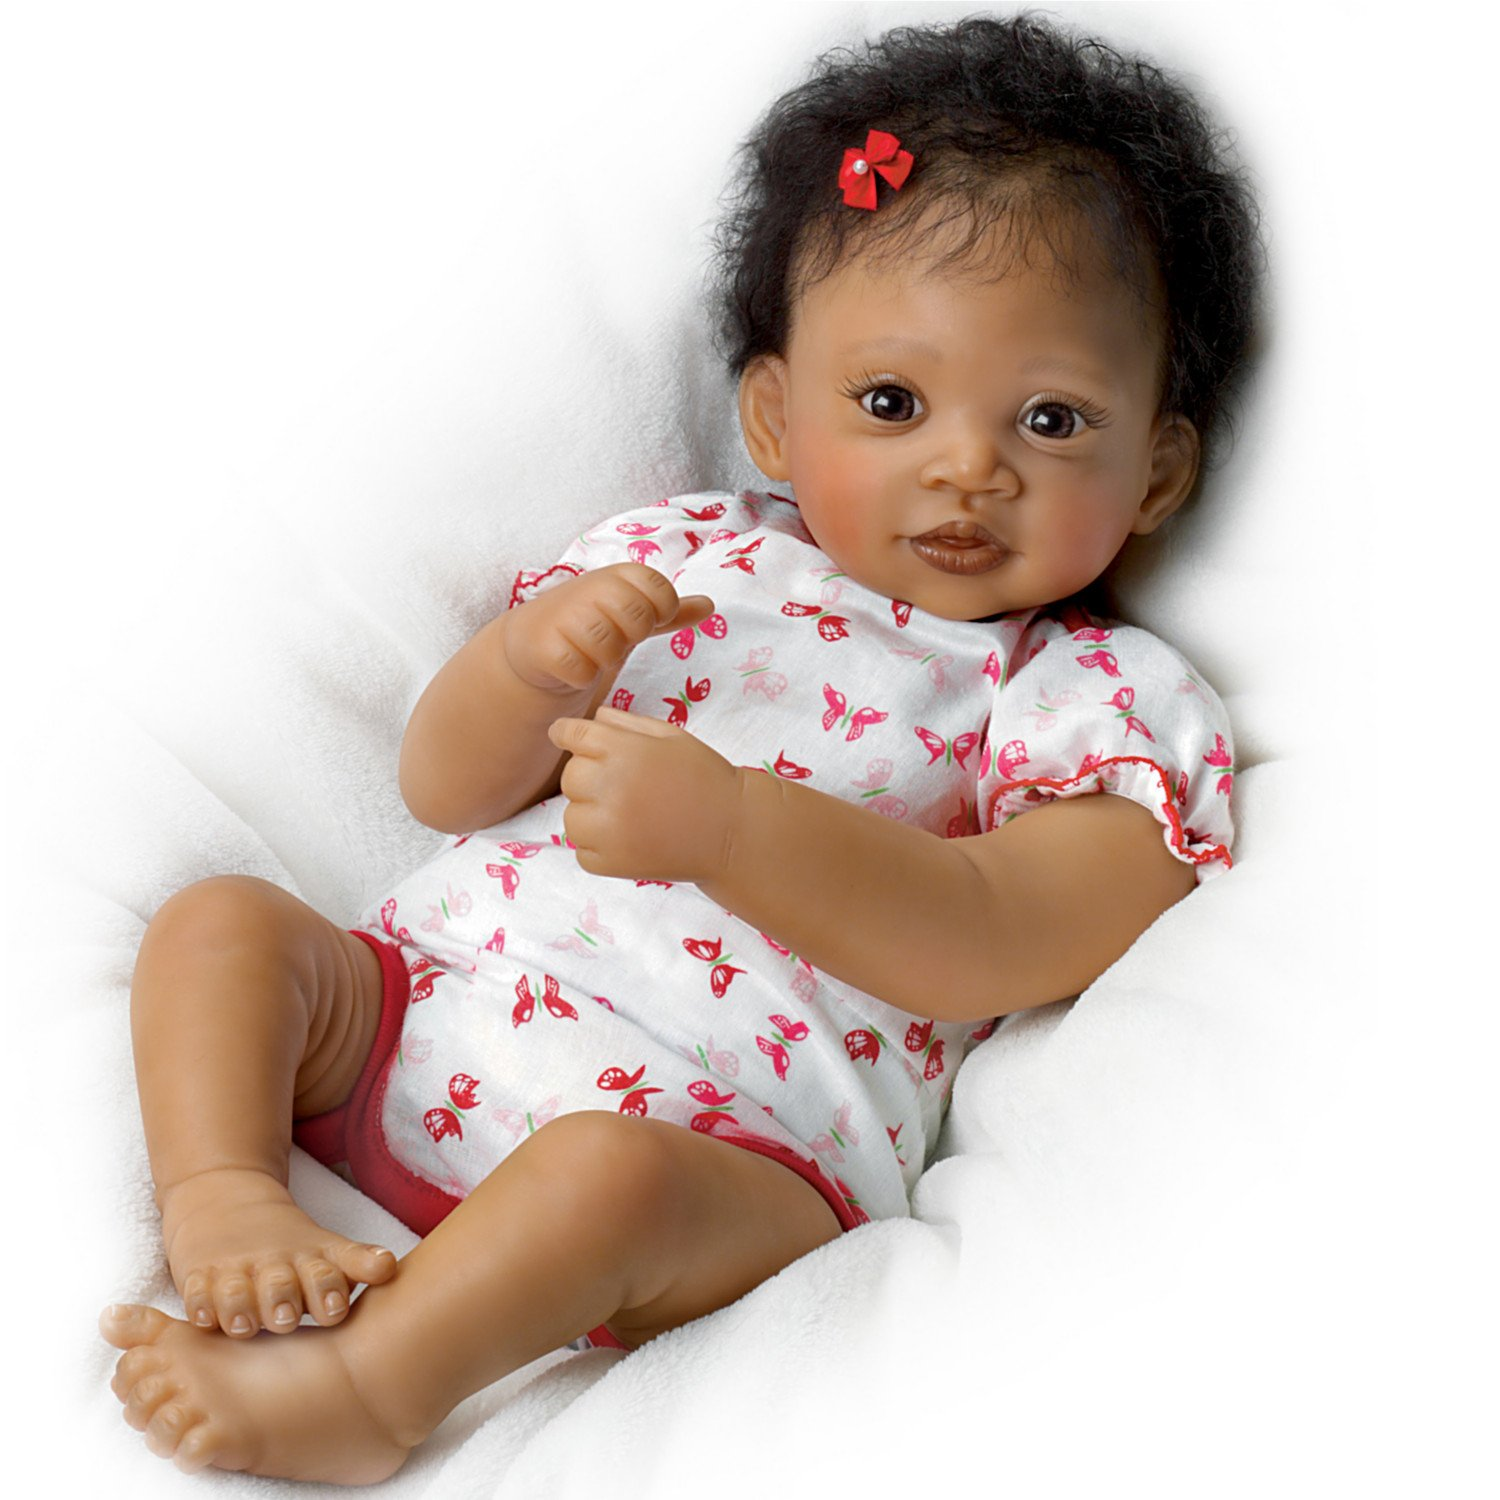 Sweet Butterfly Kisses Coos At Your Touch with Hand-Rooted Hair - So Truly Real® African-American Lifelike, Interactive & Realistic Newborn Baby Doll 19-inches by The Ashton-Drake Galleries by The Ashton-Drake Galleries